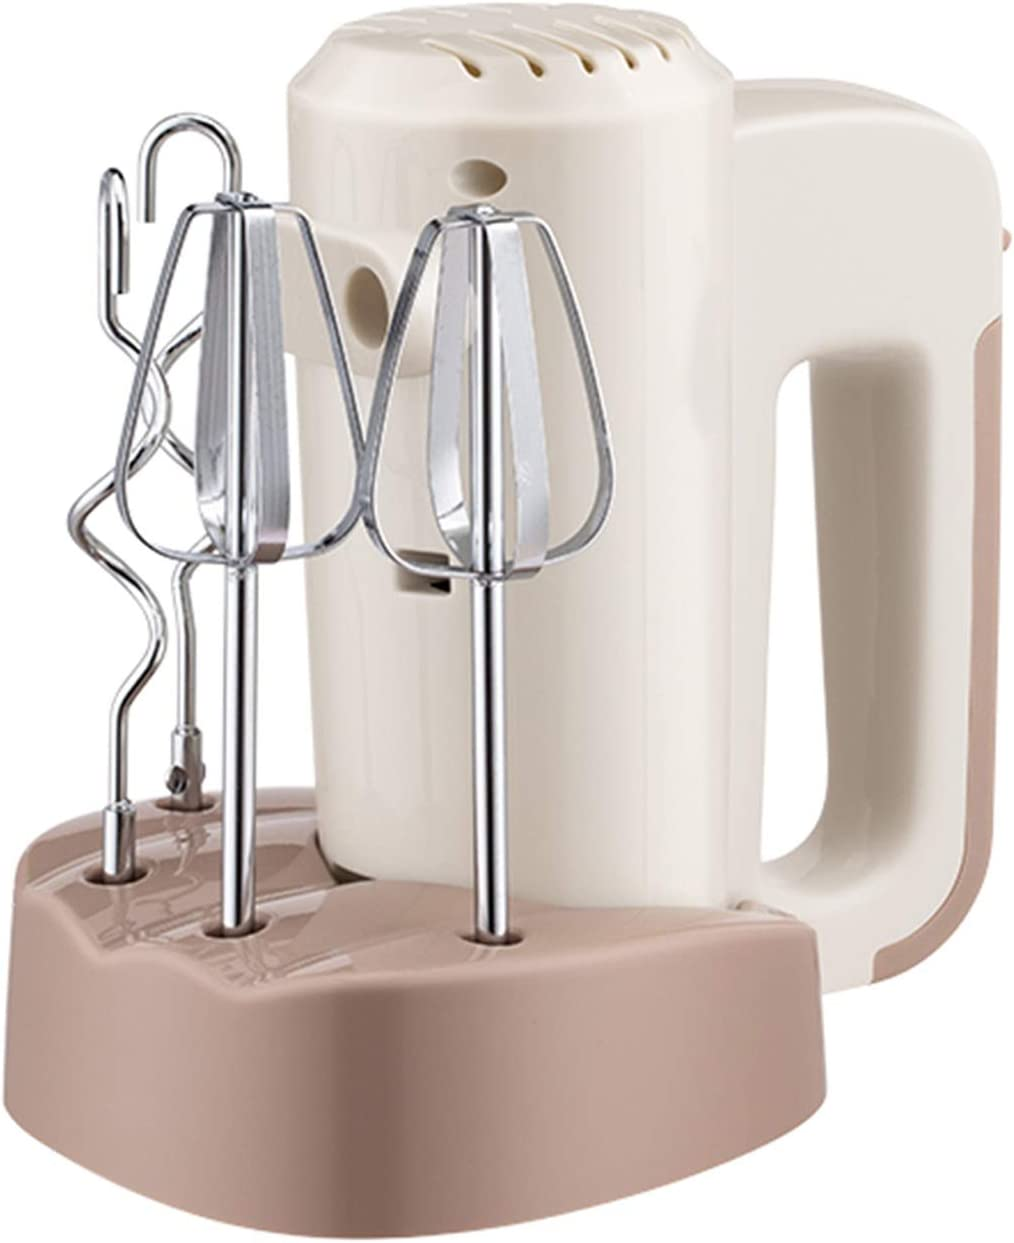 YUMEIGE Eggbeater Hand Mixer At the price with Dough S New popularity 5 Whisk and 125W Hooks